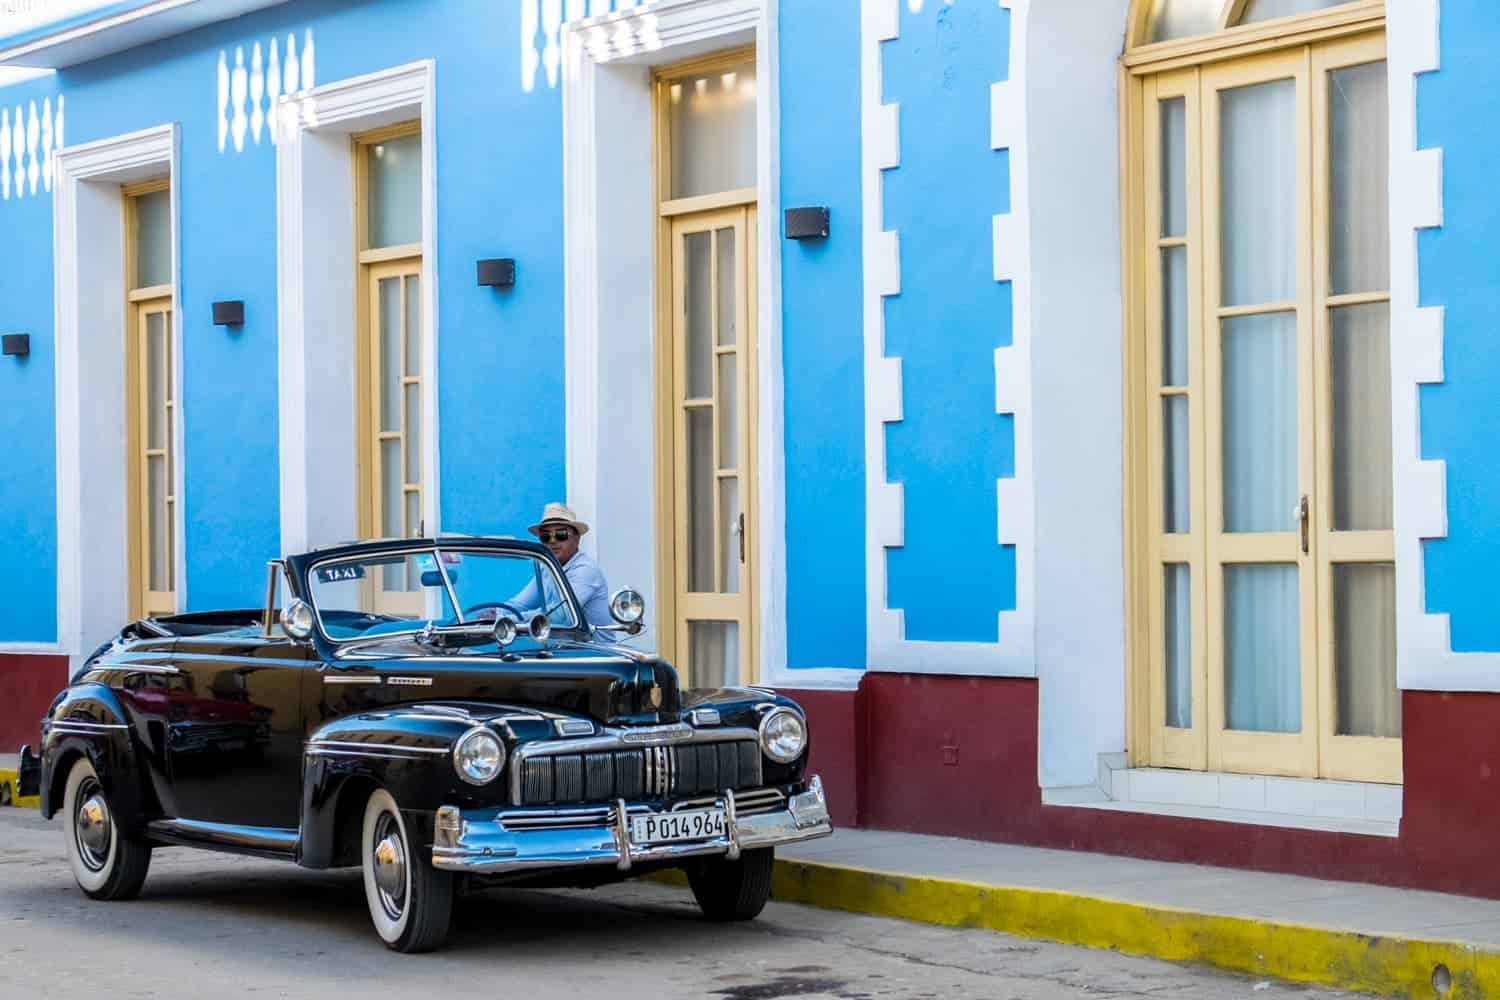 Taxi & colectivo in Cuba, Travel to Cuba guide